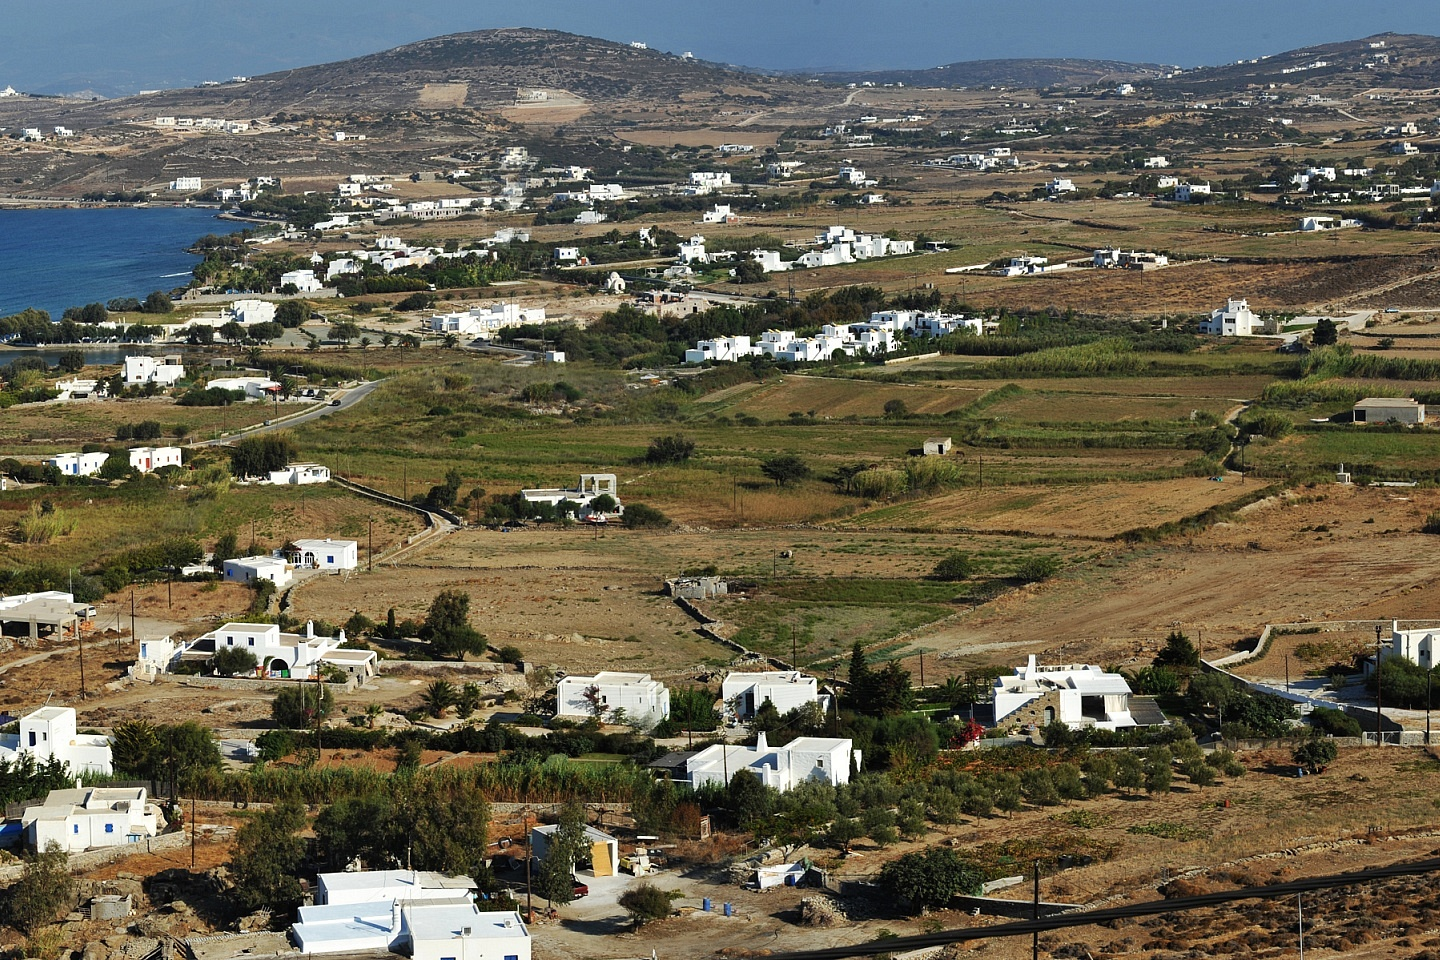 Greece / Paros – Naousa / Plot of land / 8,600 m2 /